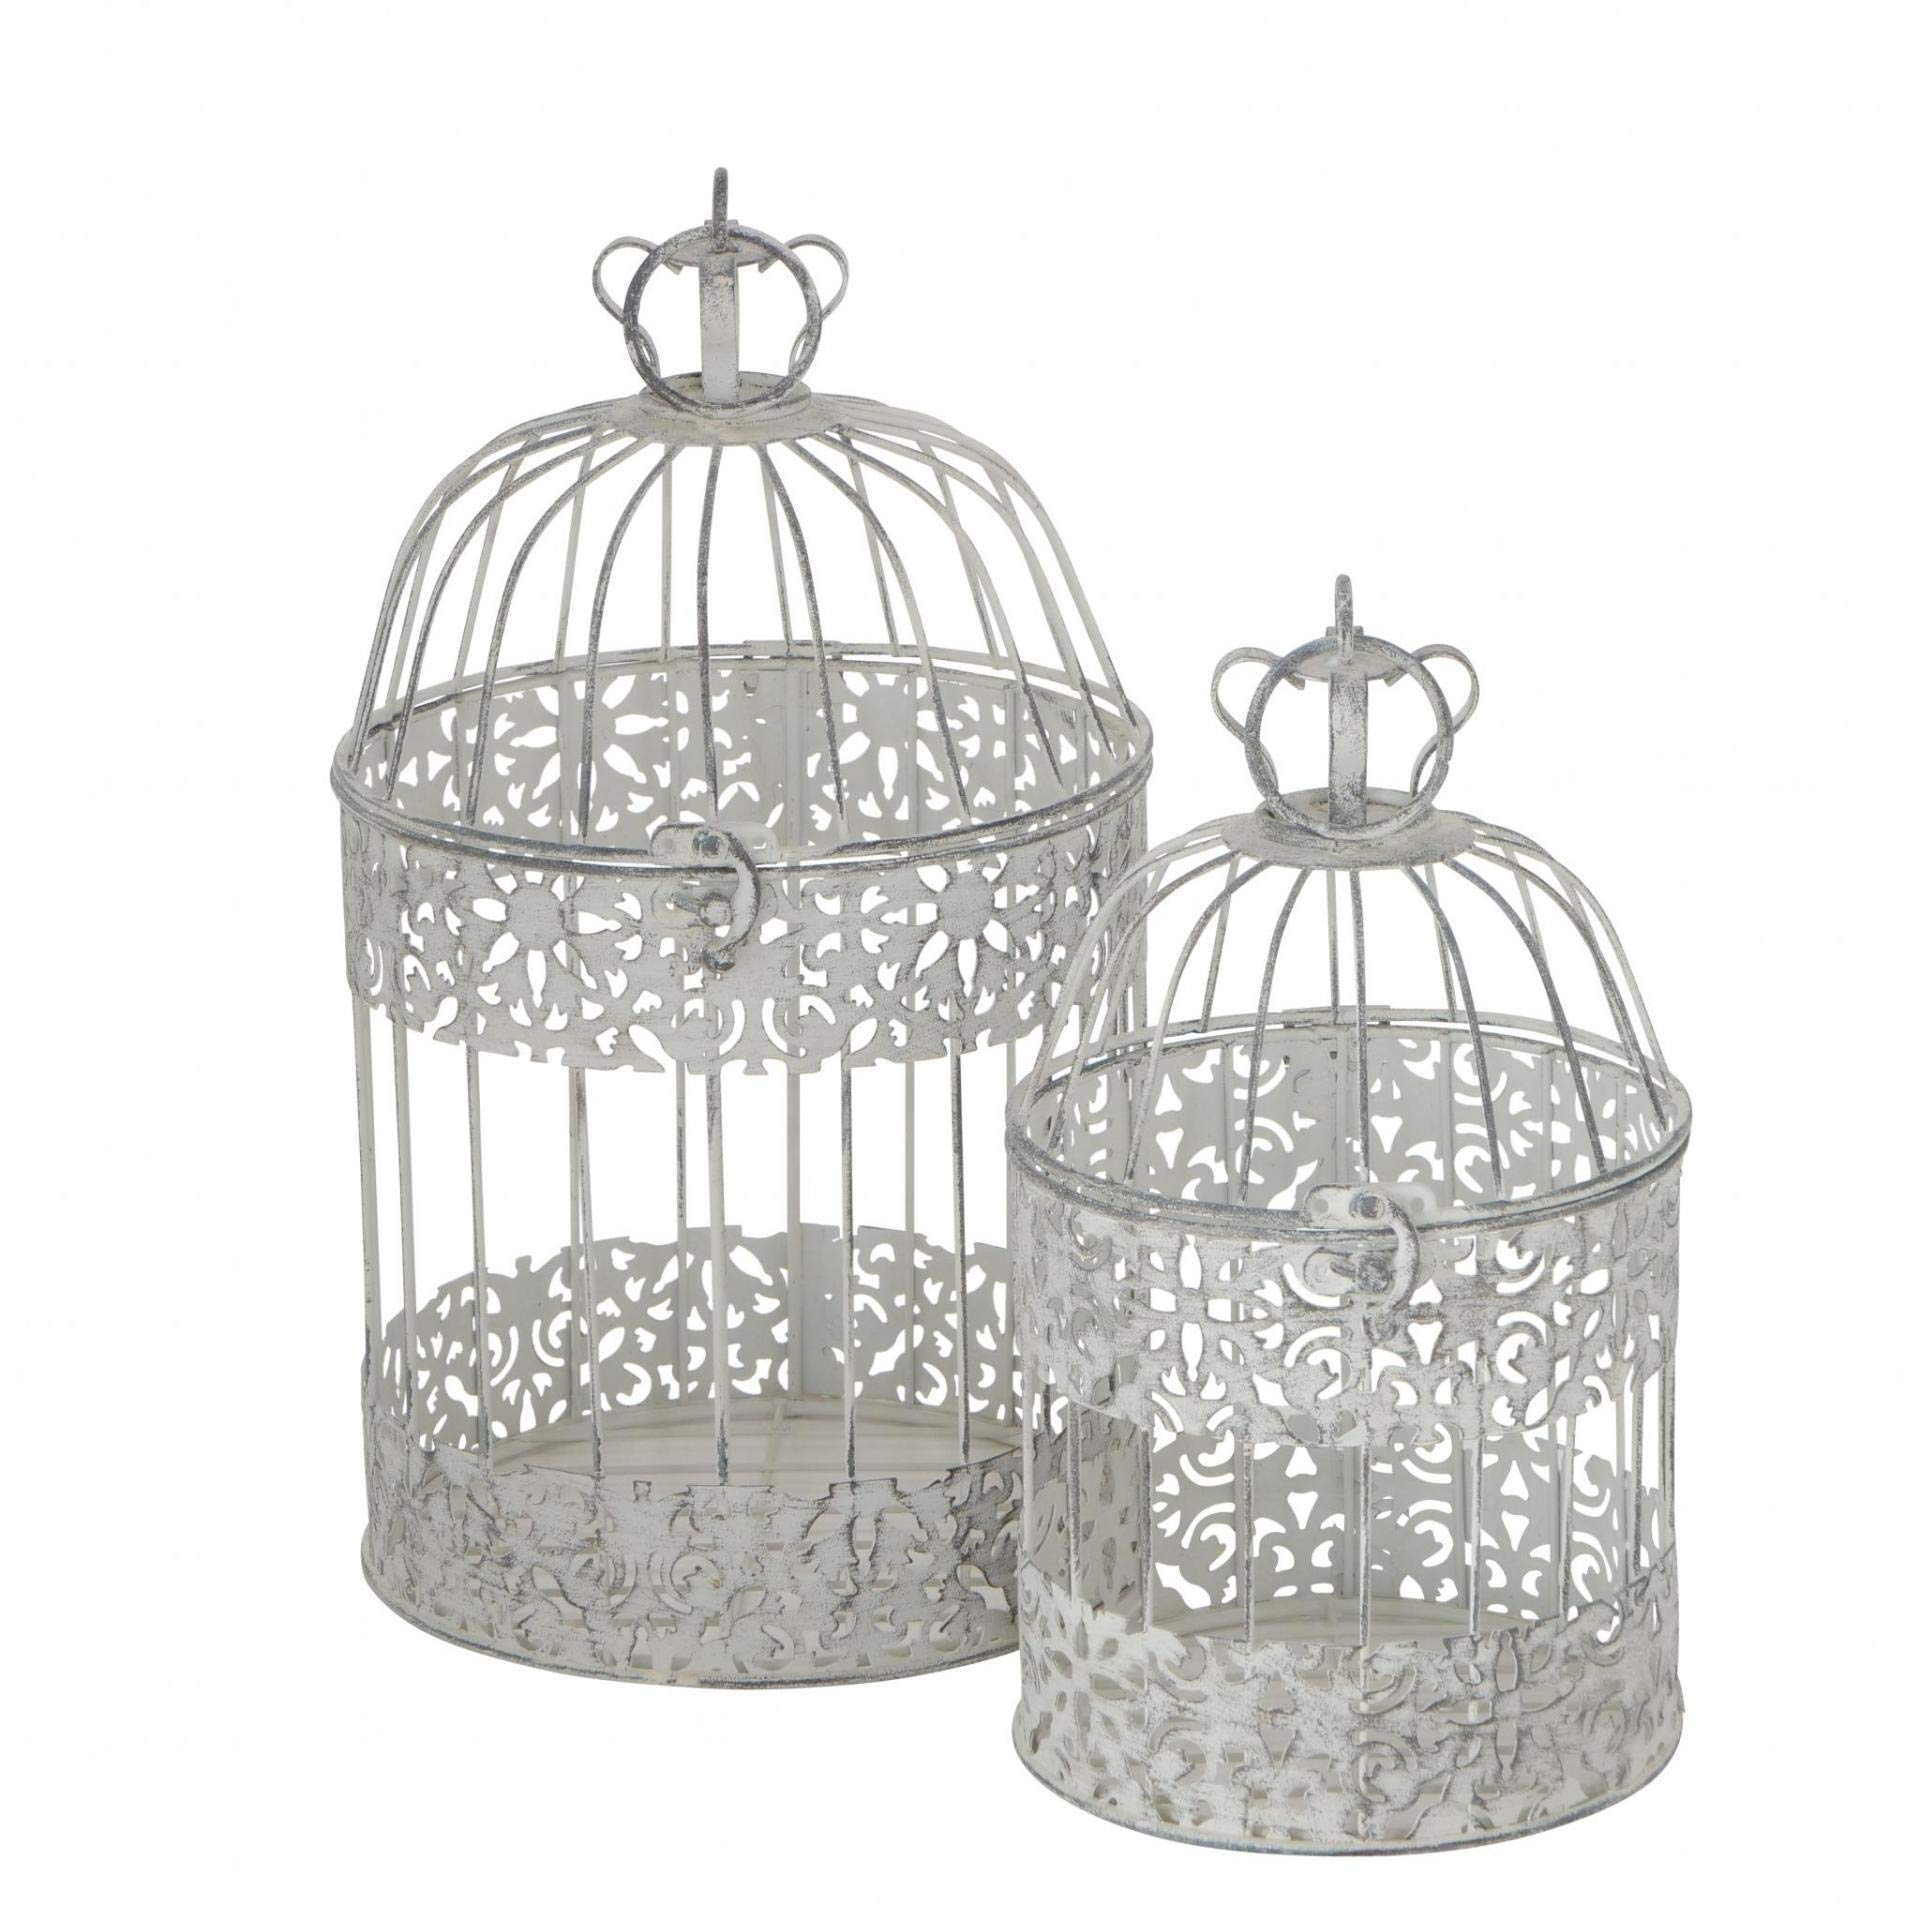 Casajame Home Furniture Decoration Acces Buy Online In South Africa At Desertcart